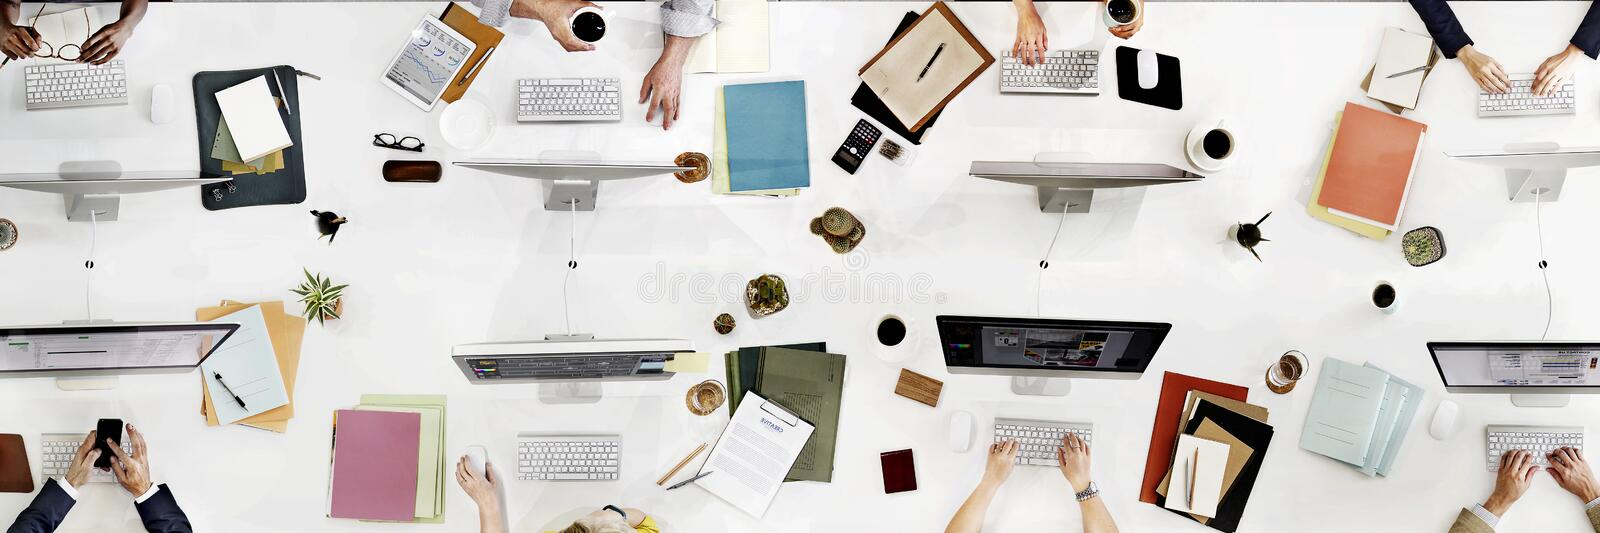 Download Business Team Meeting Connection Digital Technology Concept Stock Image - Image of ideas, community: 68414125